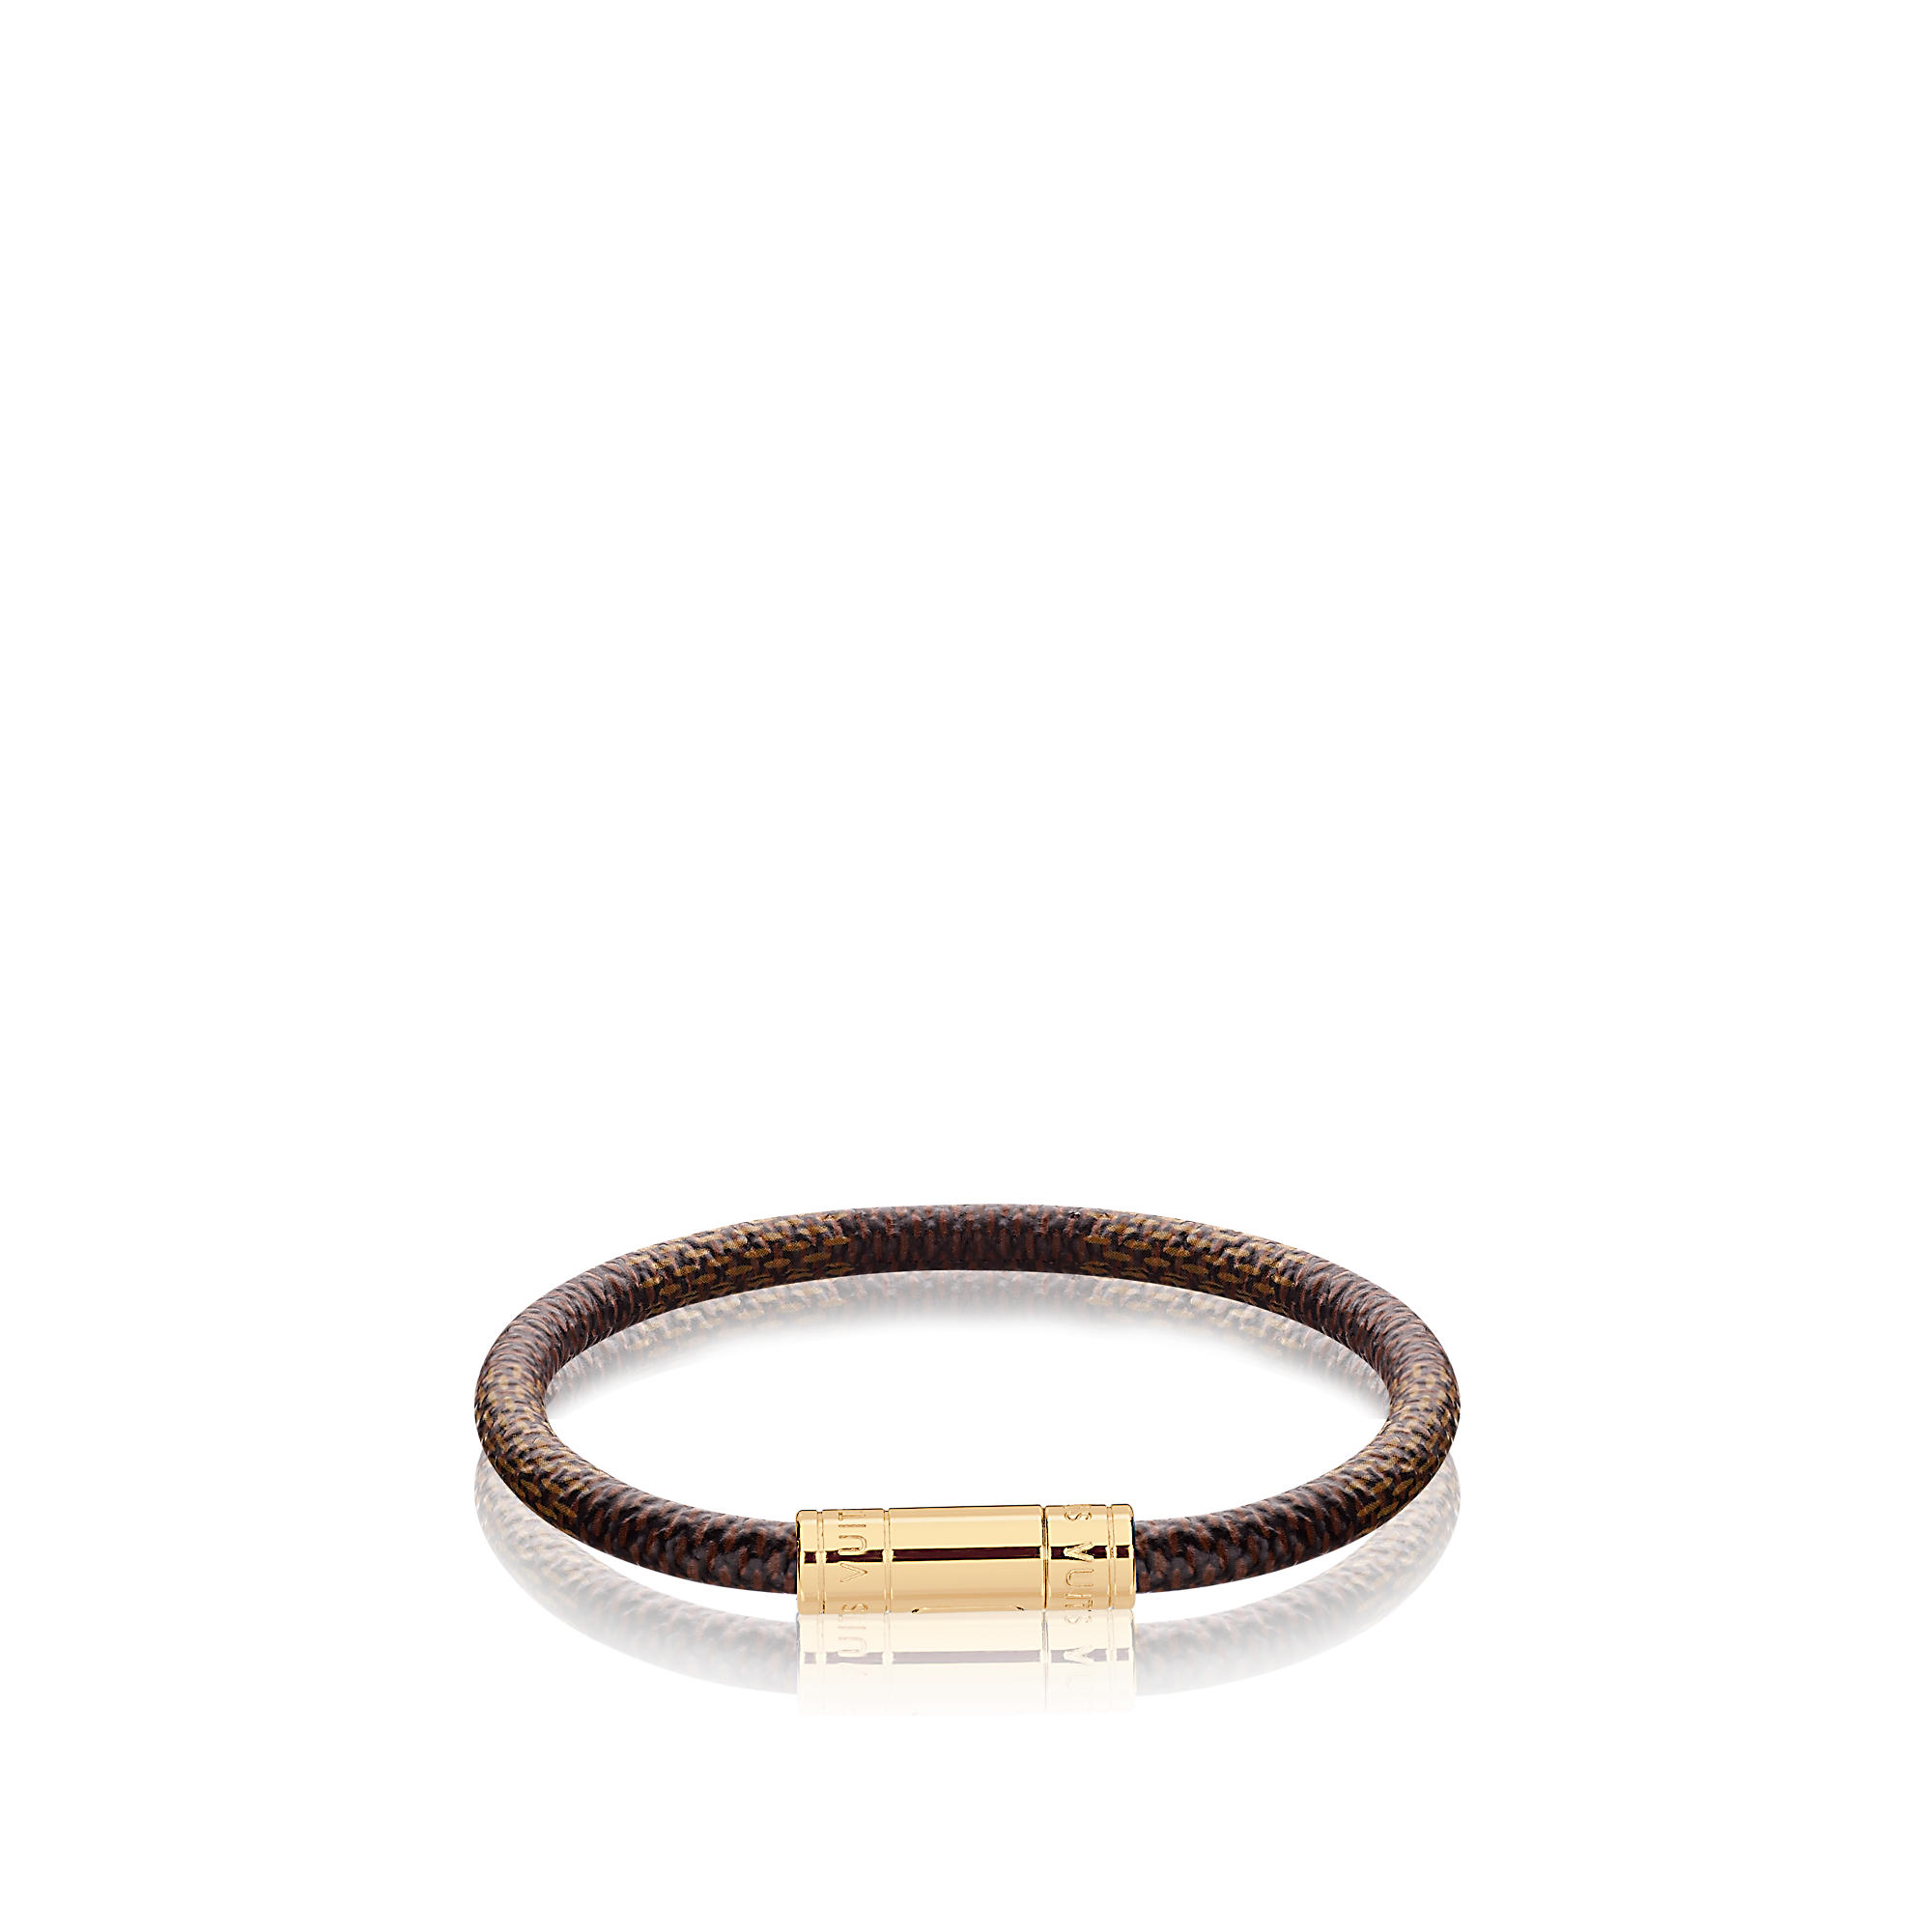 informazioni per ef45d 82382 acquistare Louis Vuitton Donna Bracciale Keep It